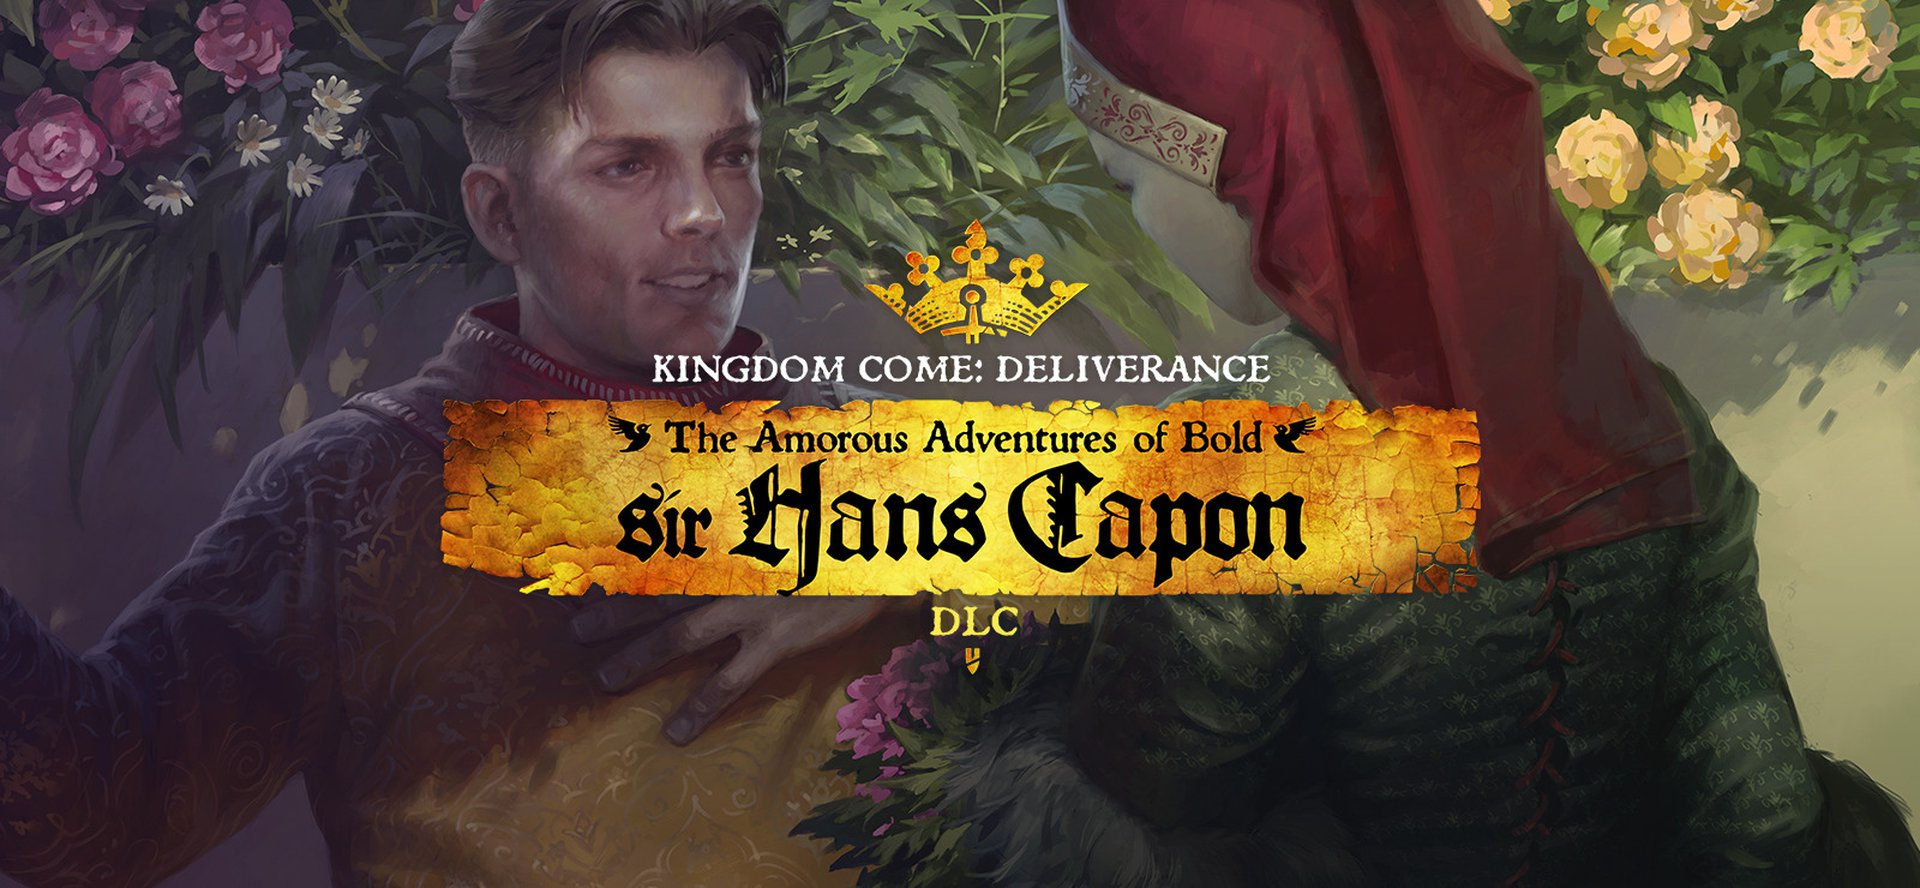 Kingdom Come: Deliverance - The Amorous Adventures of Bold Sir Hans Capon